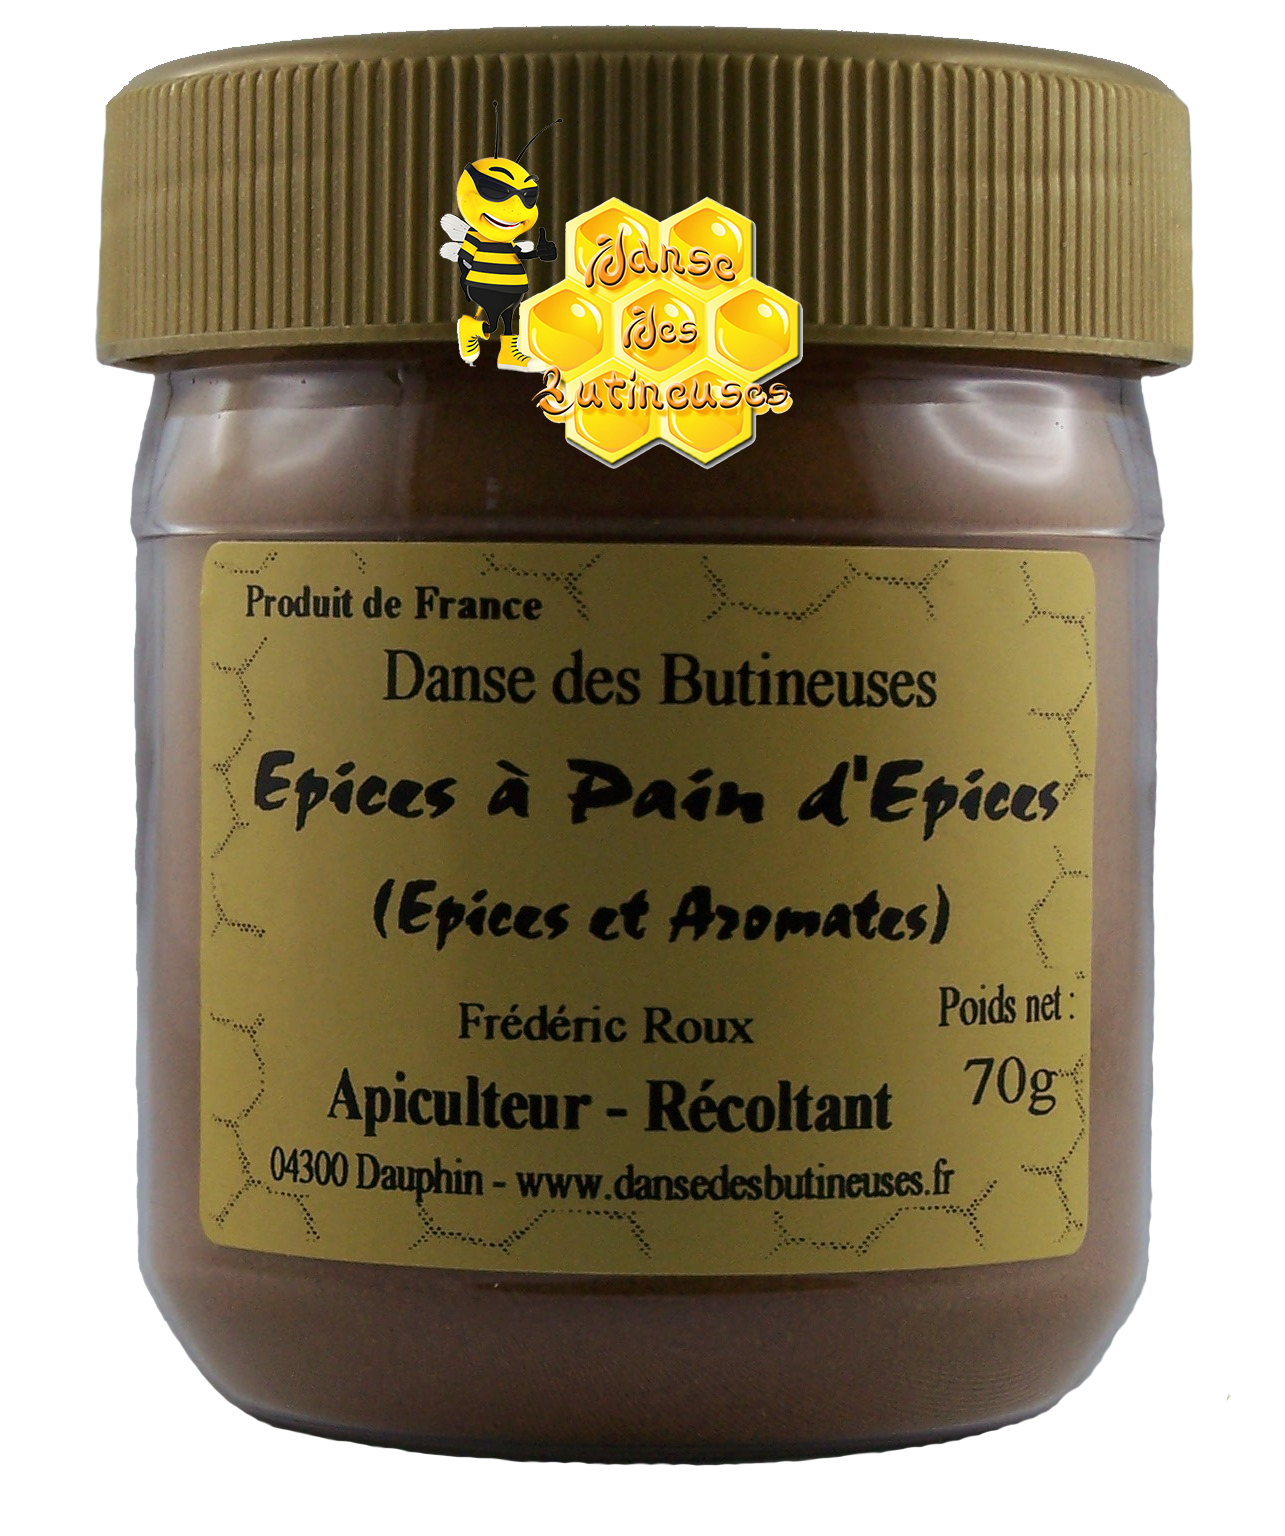 Epices a pain epices 70g 1